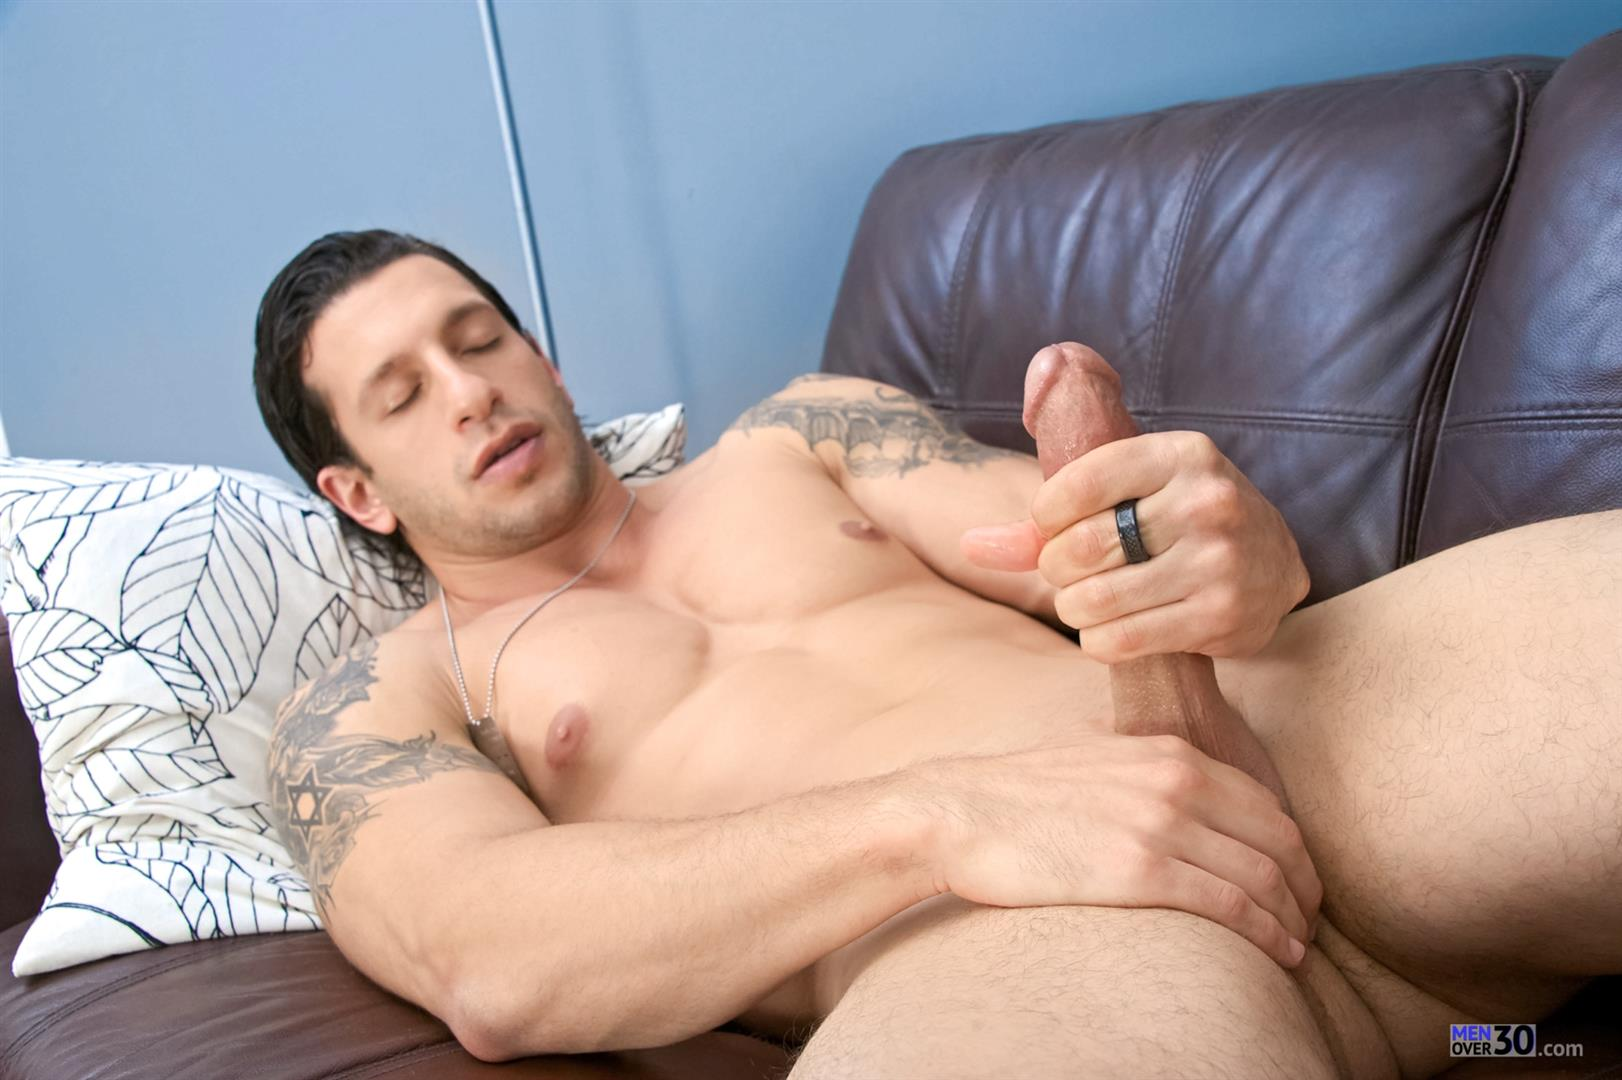 Amateur men jerking off